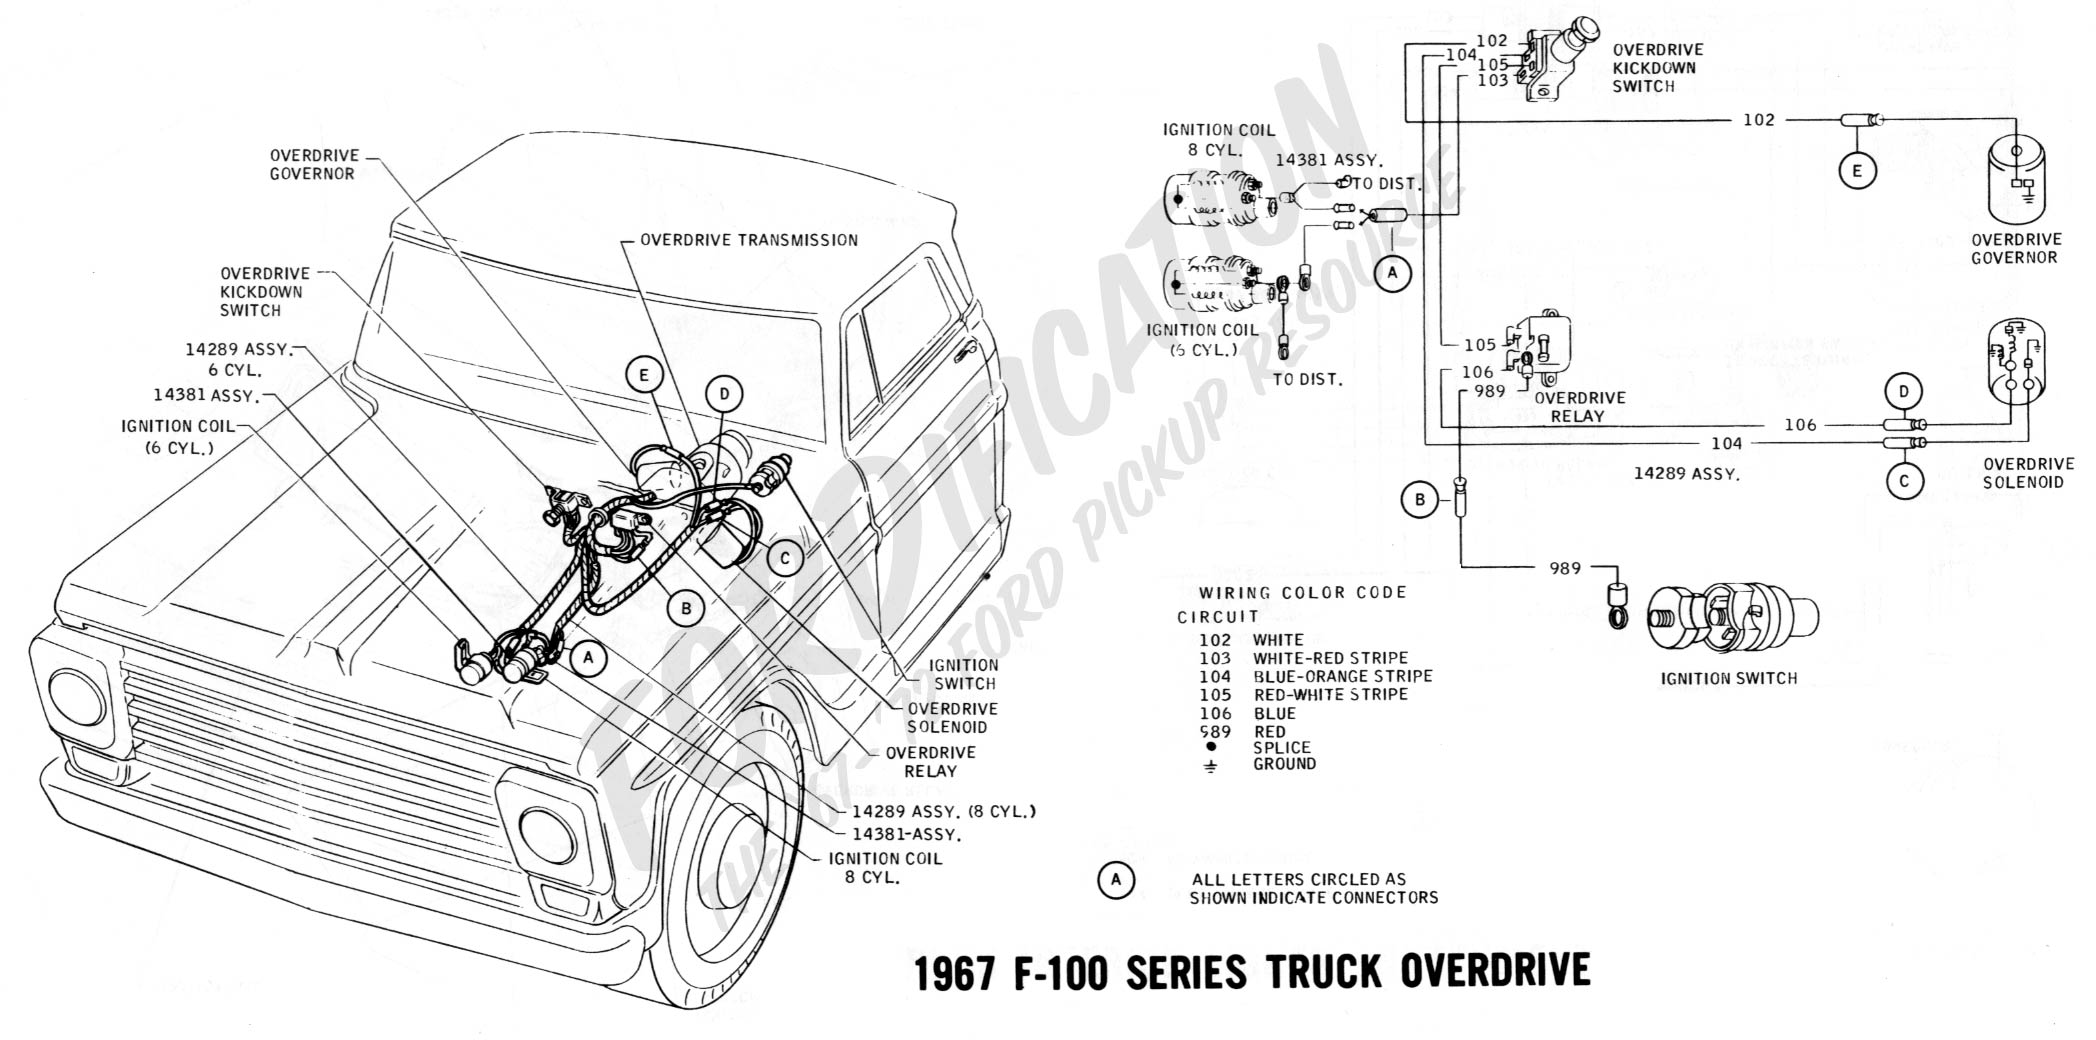 wiring 1967overdrive2 ford truck technical drawings and schematics section h wiring  at webbmarketing.co